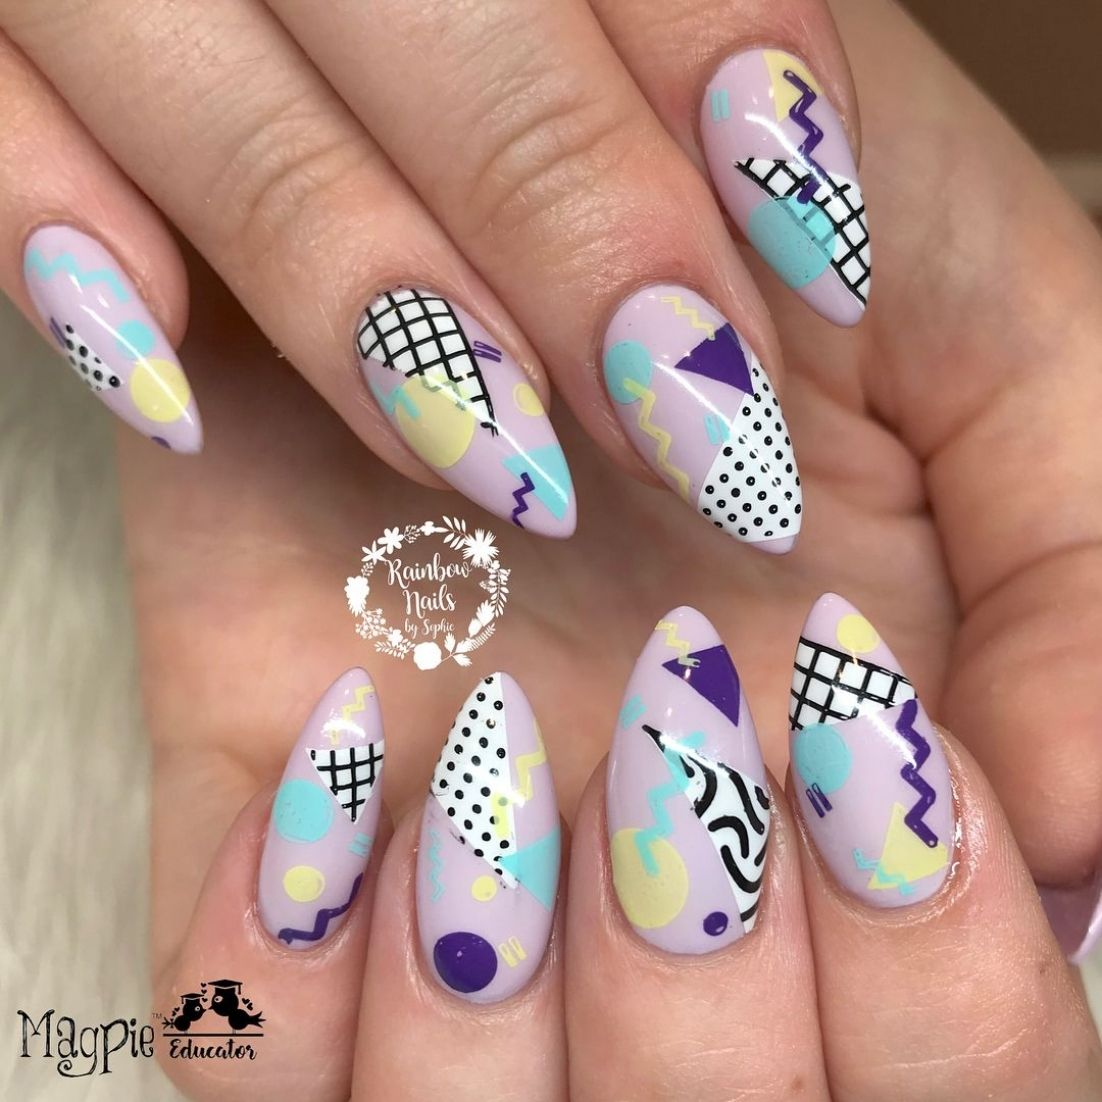 80s 80s Nails Rainbow Nails Nails Throughout 80 S Nail Art Designs Fashion Style Ideas In 2020 Retro Nails 80s Nails 90s Nails